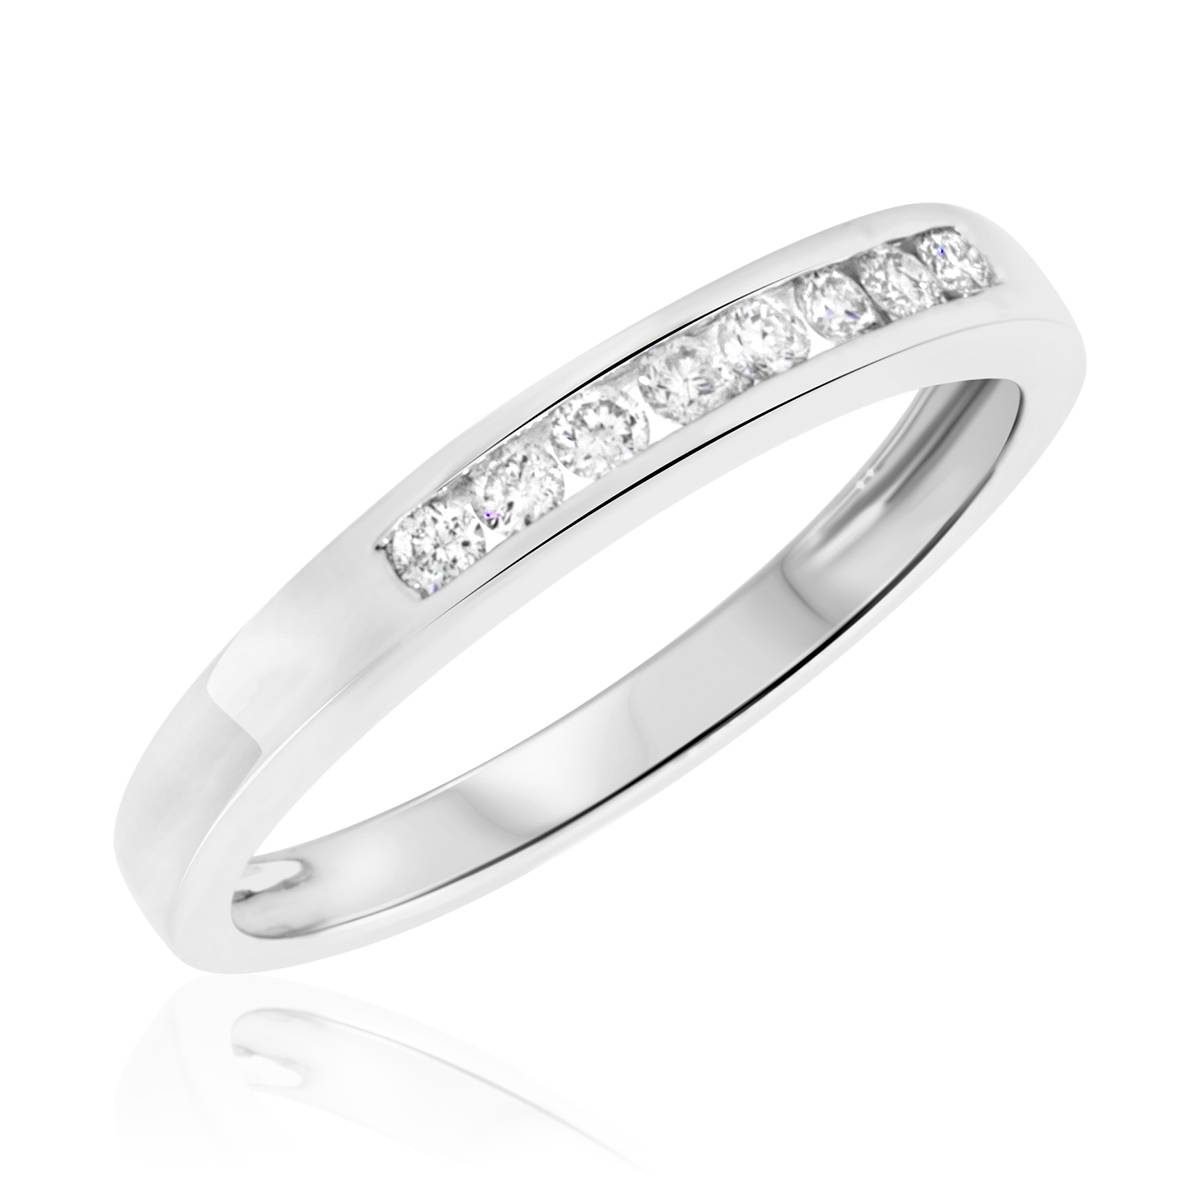 2019 Popular Women White Gold Wedding Bands